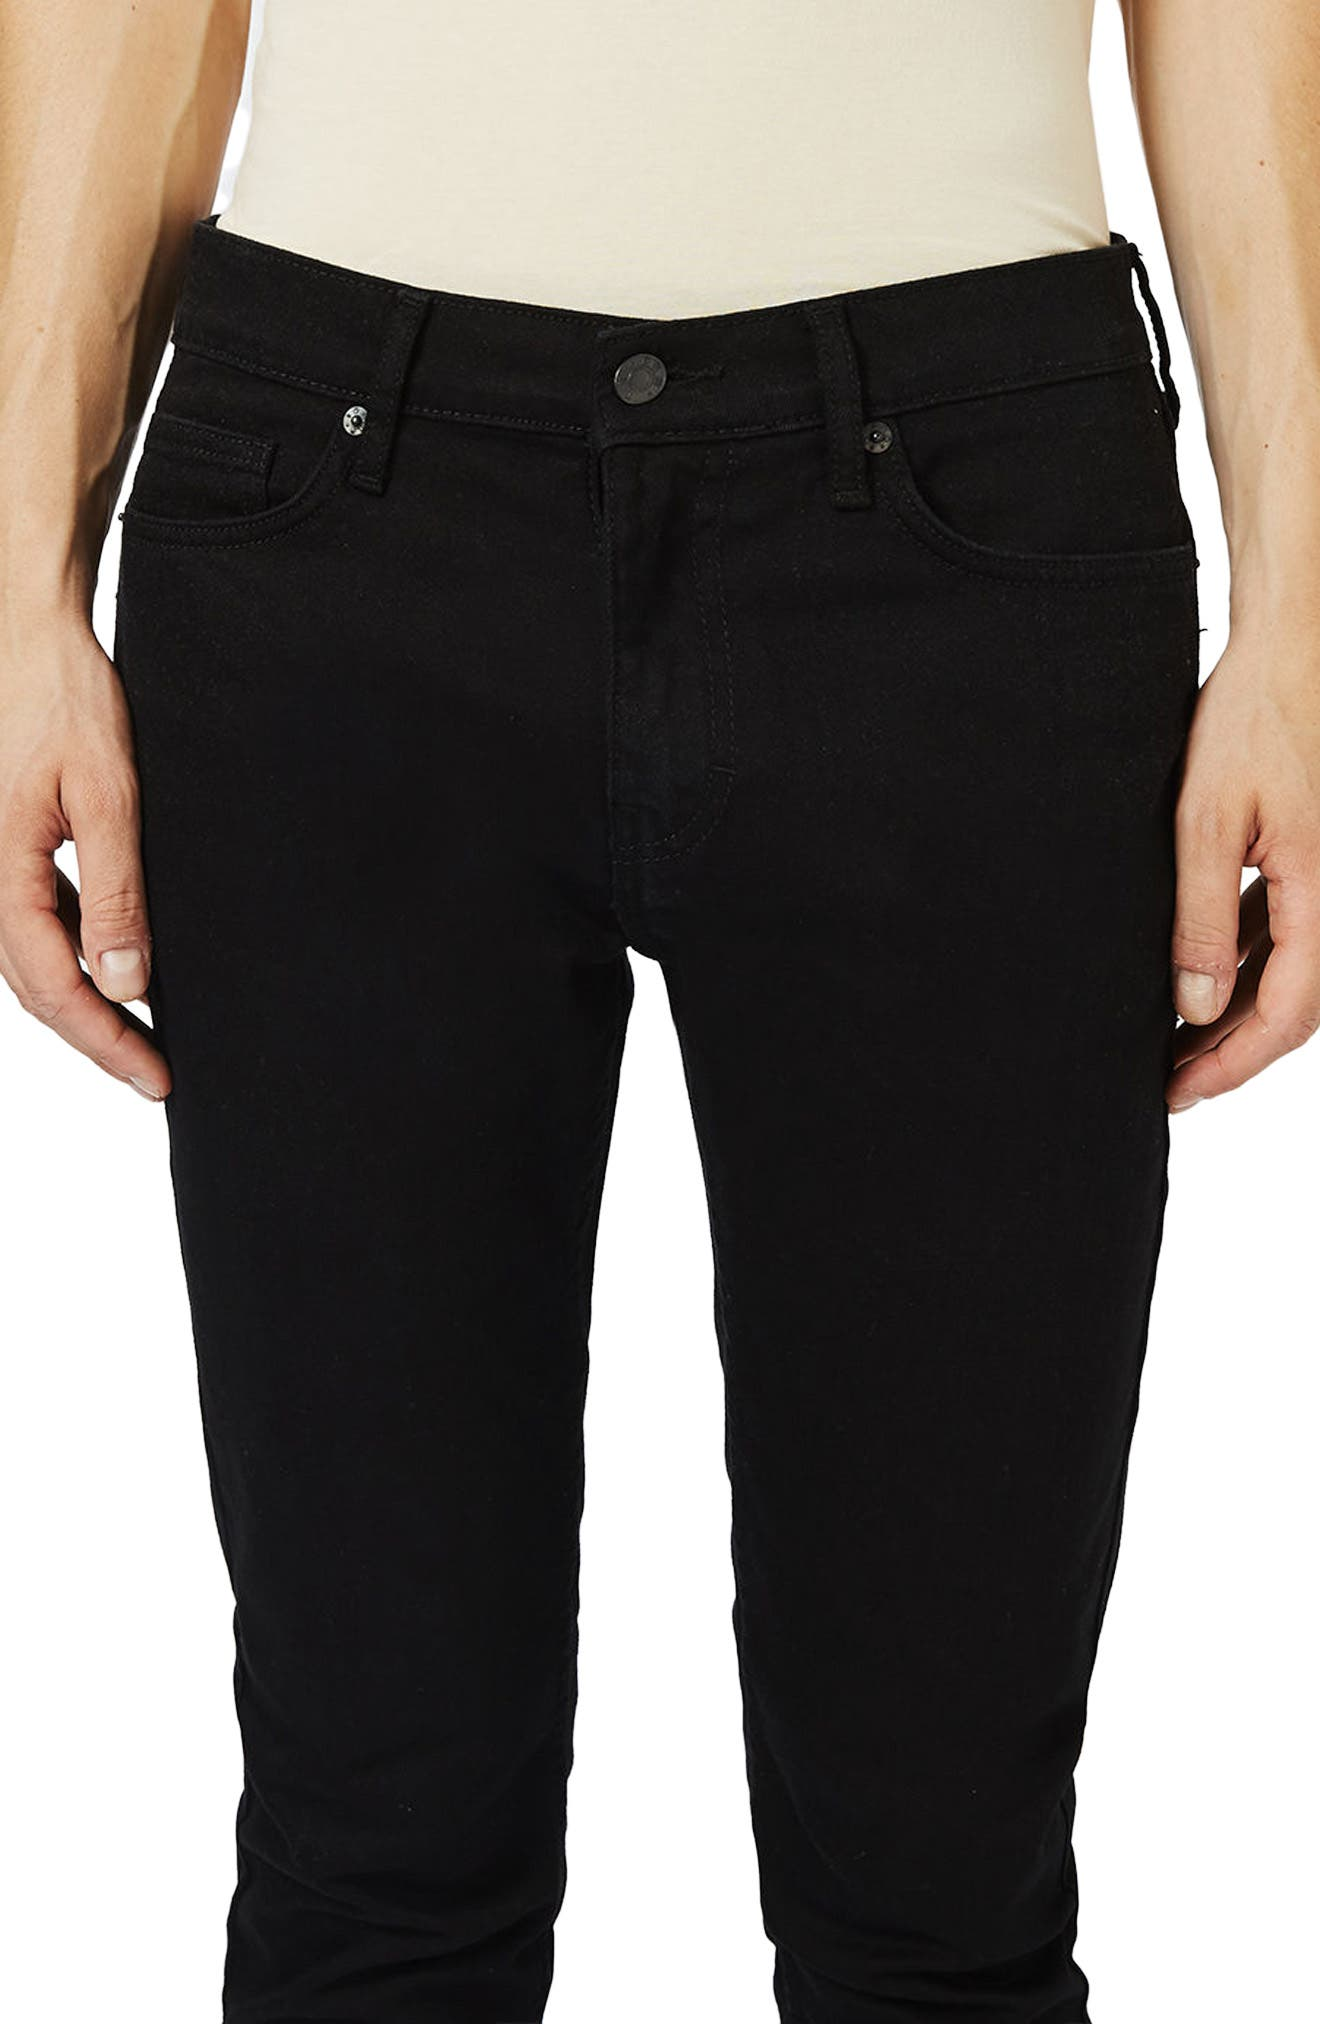 TOPMAN, Skinny Stretch Jeans, Alternate thumbnail 4, color, BLACK